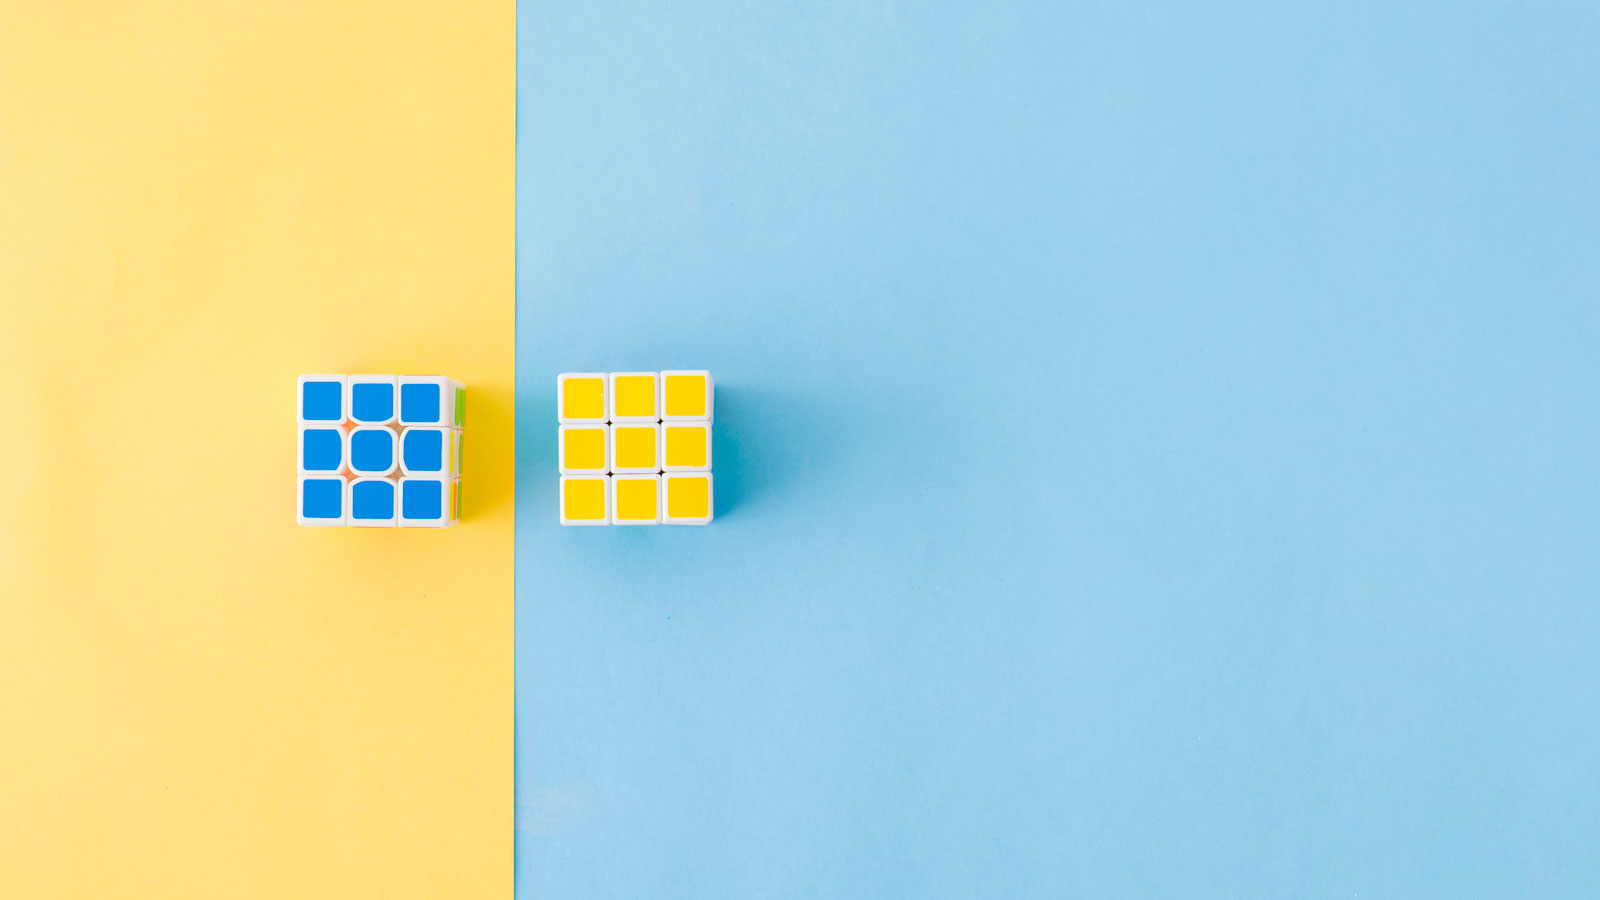 Rubik's Cube | Squarespace vs. WordPress: Which One Is Right For You?